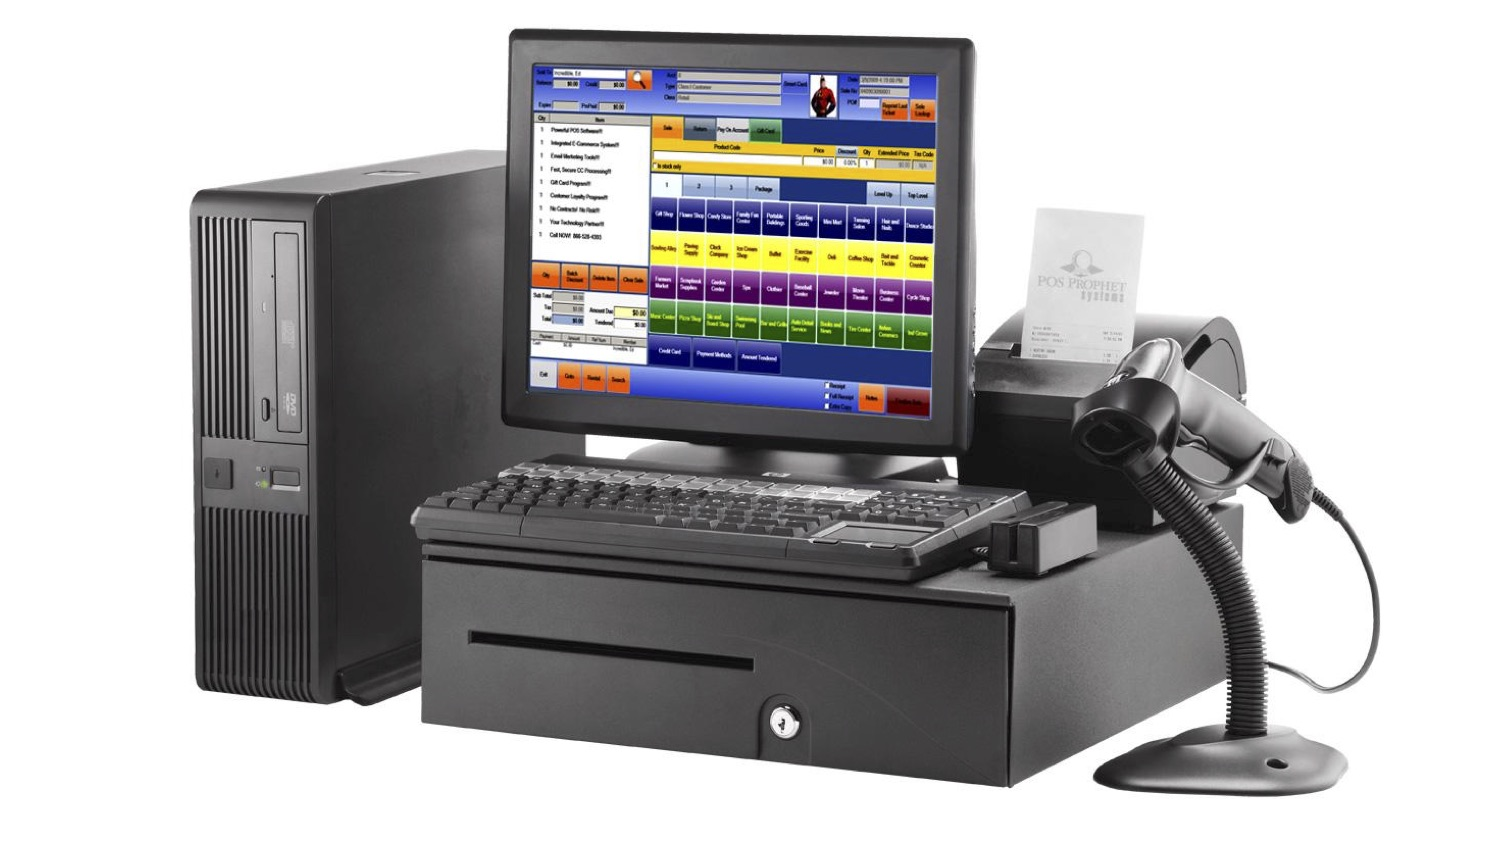 A traditional POS system